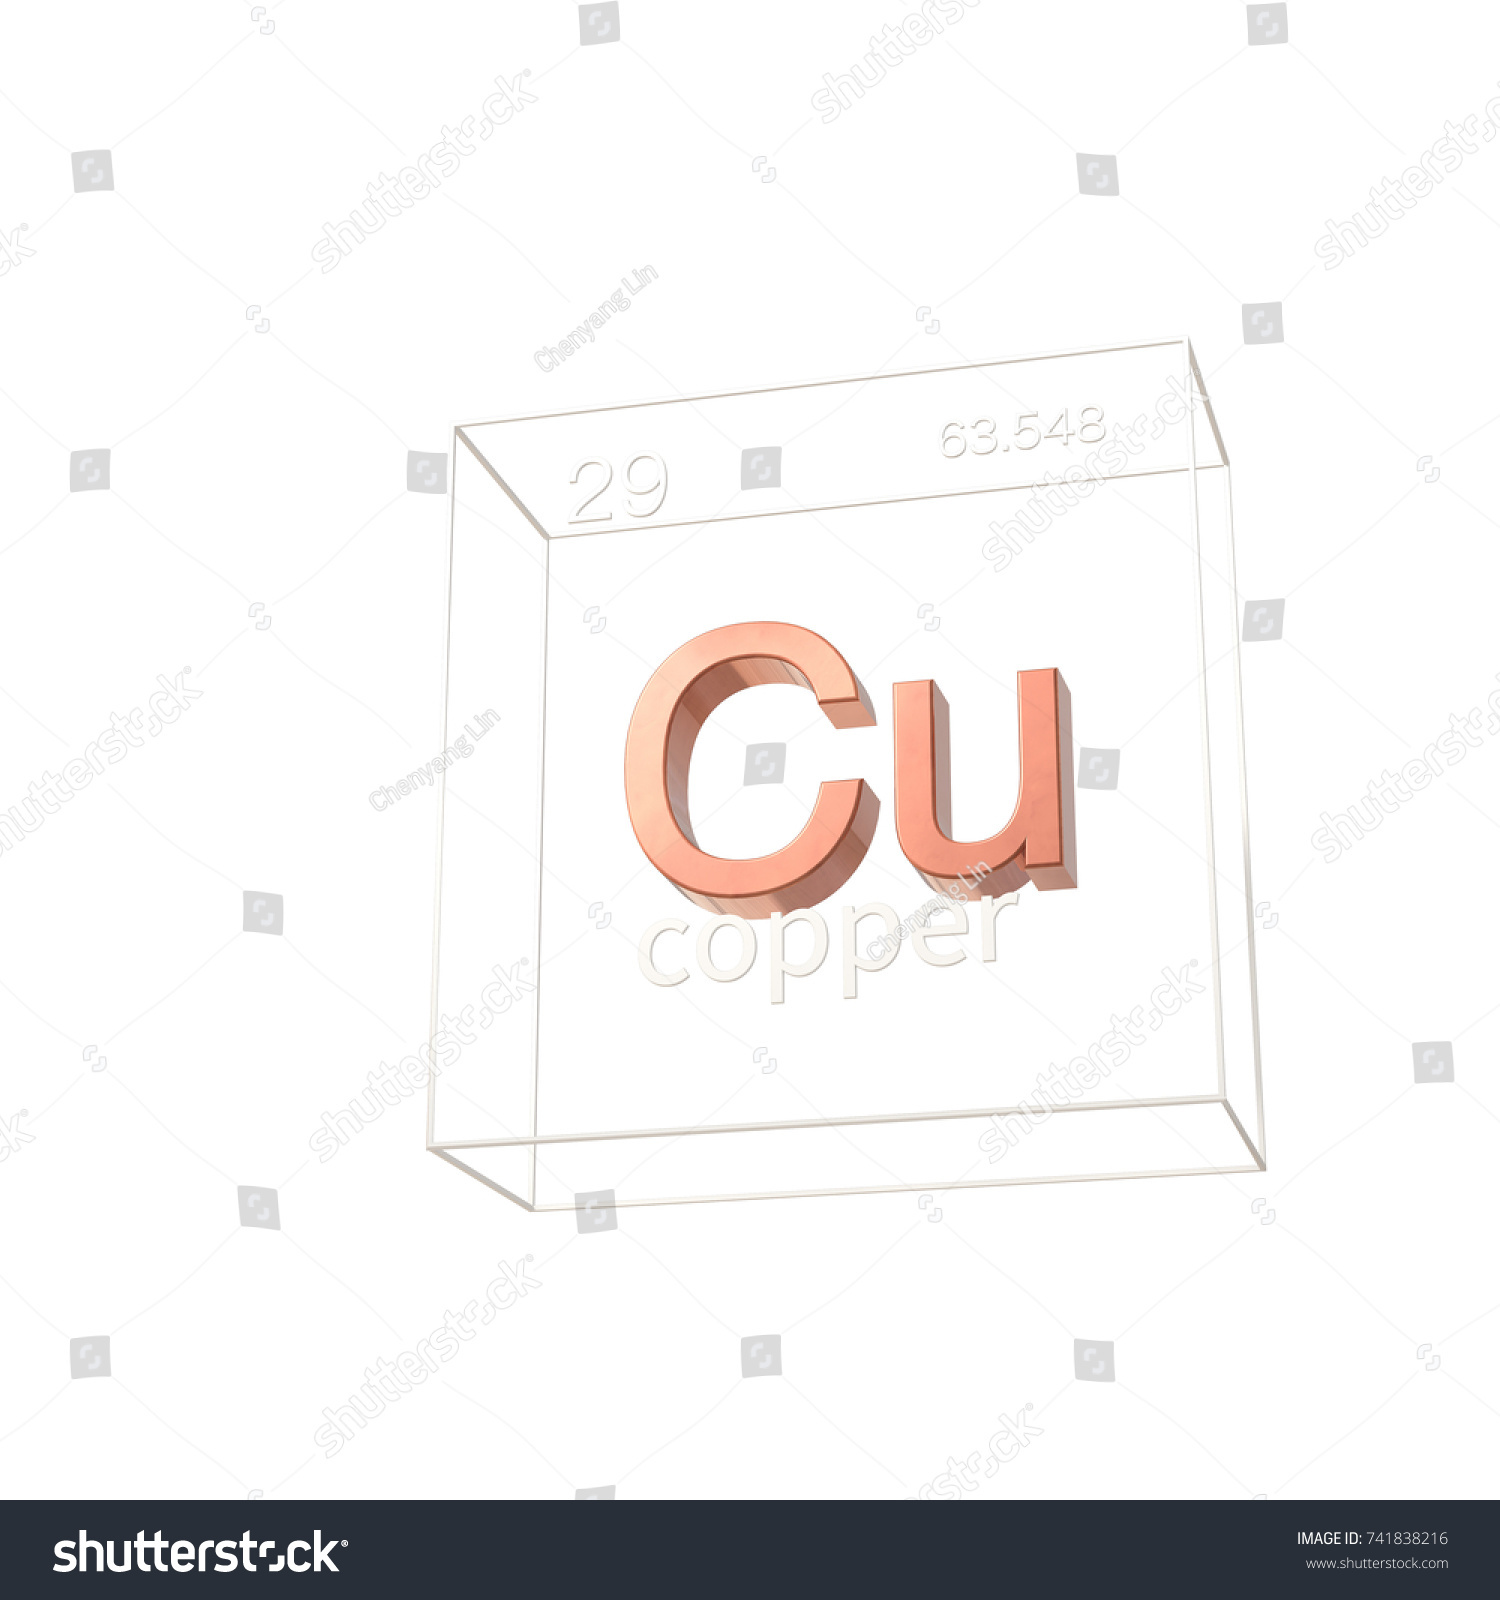 Copper chemical element atomic number atomic stock illustration copper chemical element atomic number and atomic weight chemical element of periodic table gamestrikefo Choice Image